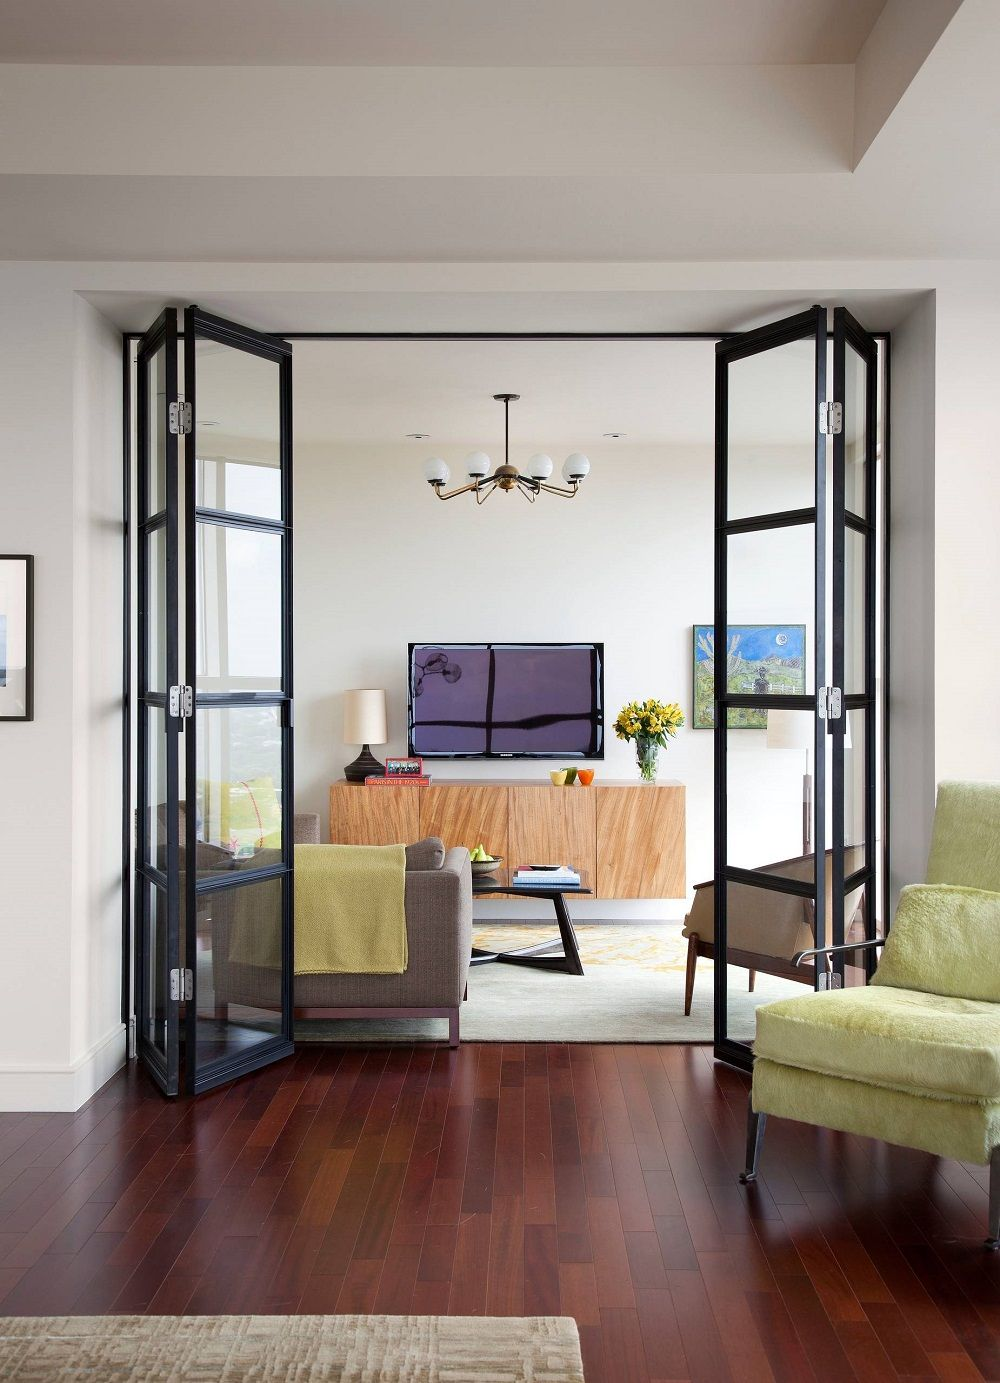 The Types Of Doors You Can Use In Your Home Design In 2020 Glass Doors Interior French Doors Interior Sliding Doors Interior